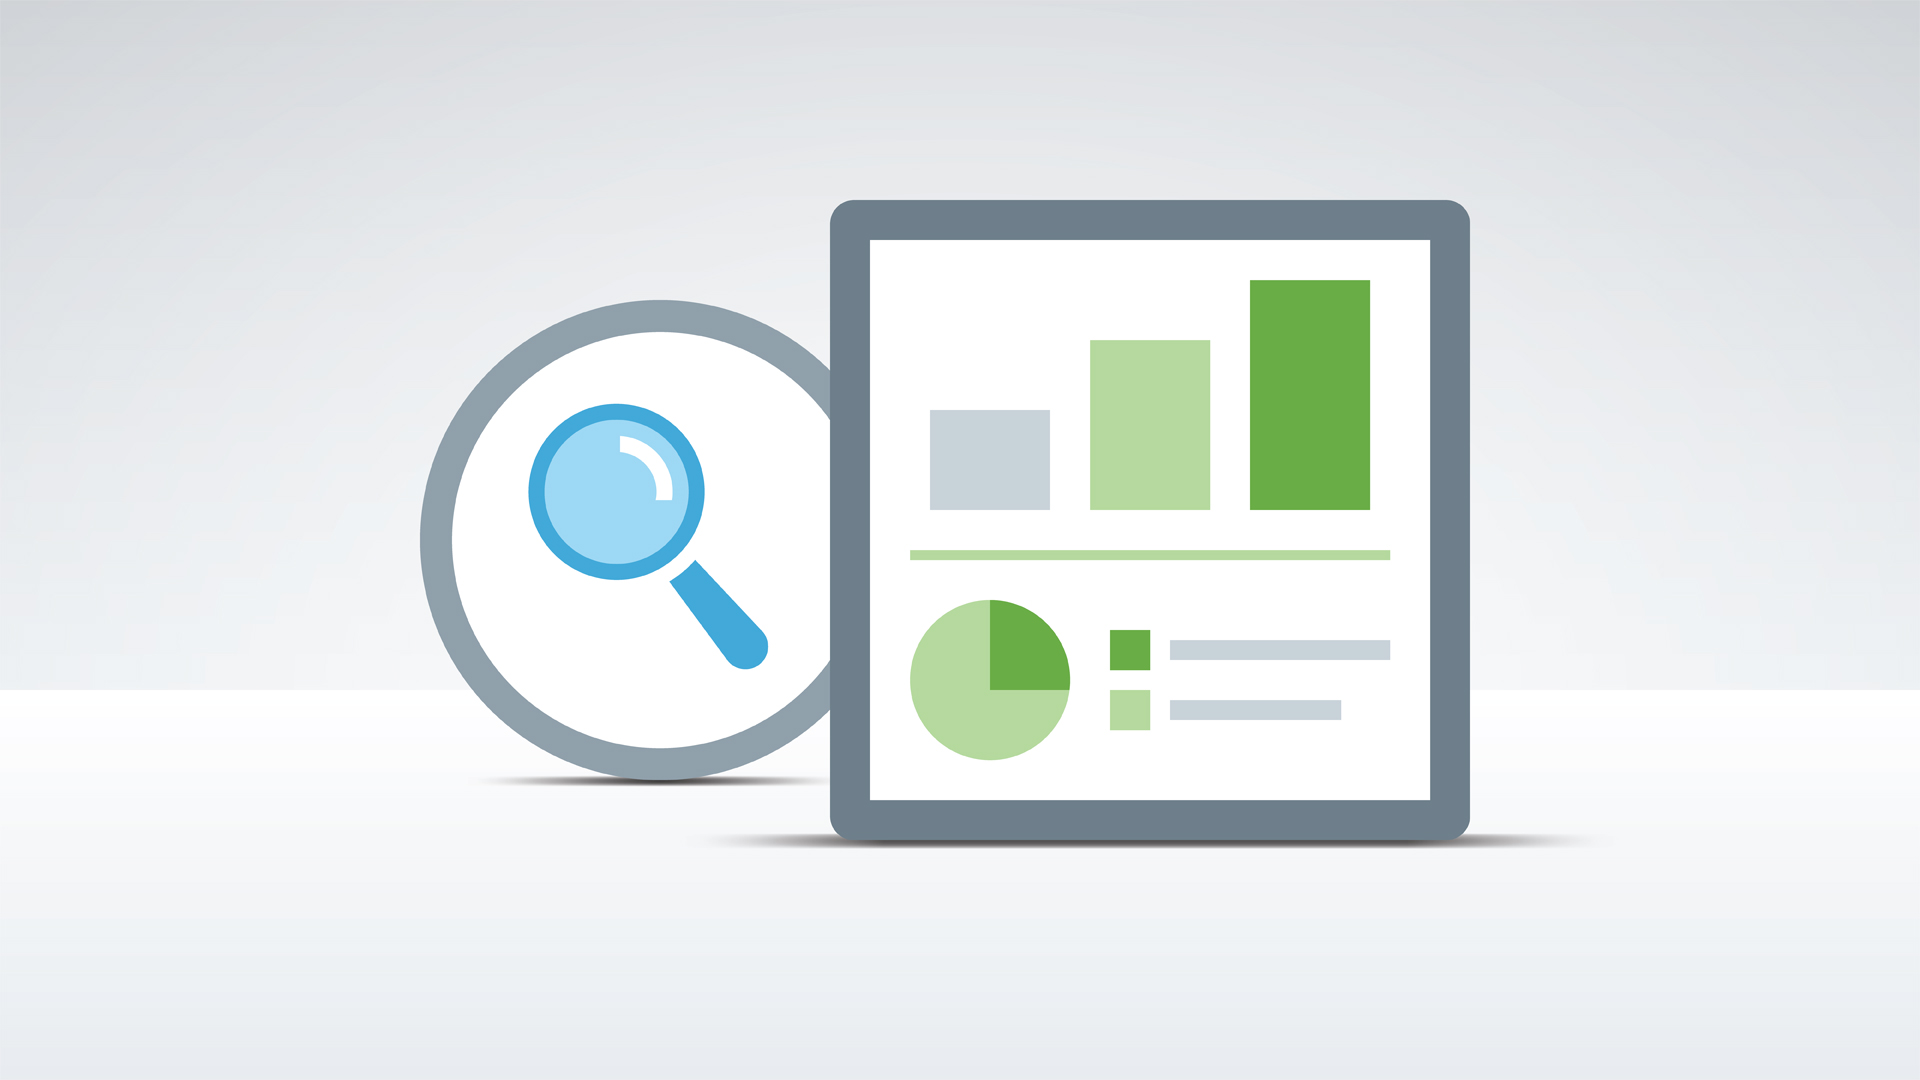 Introducing Google Data Studio and accessing from a browser: Google Data Studio First Look